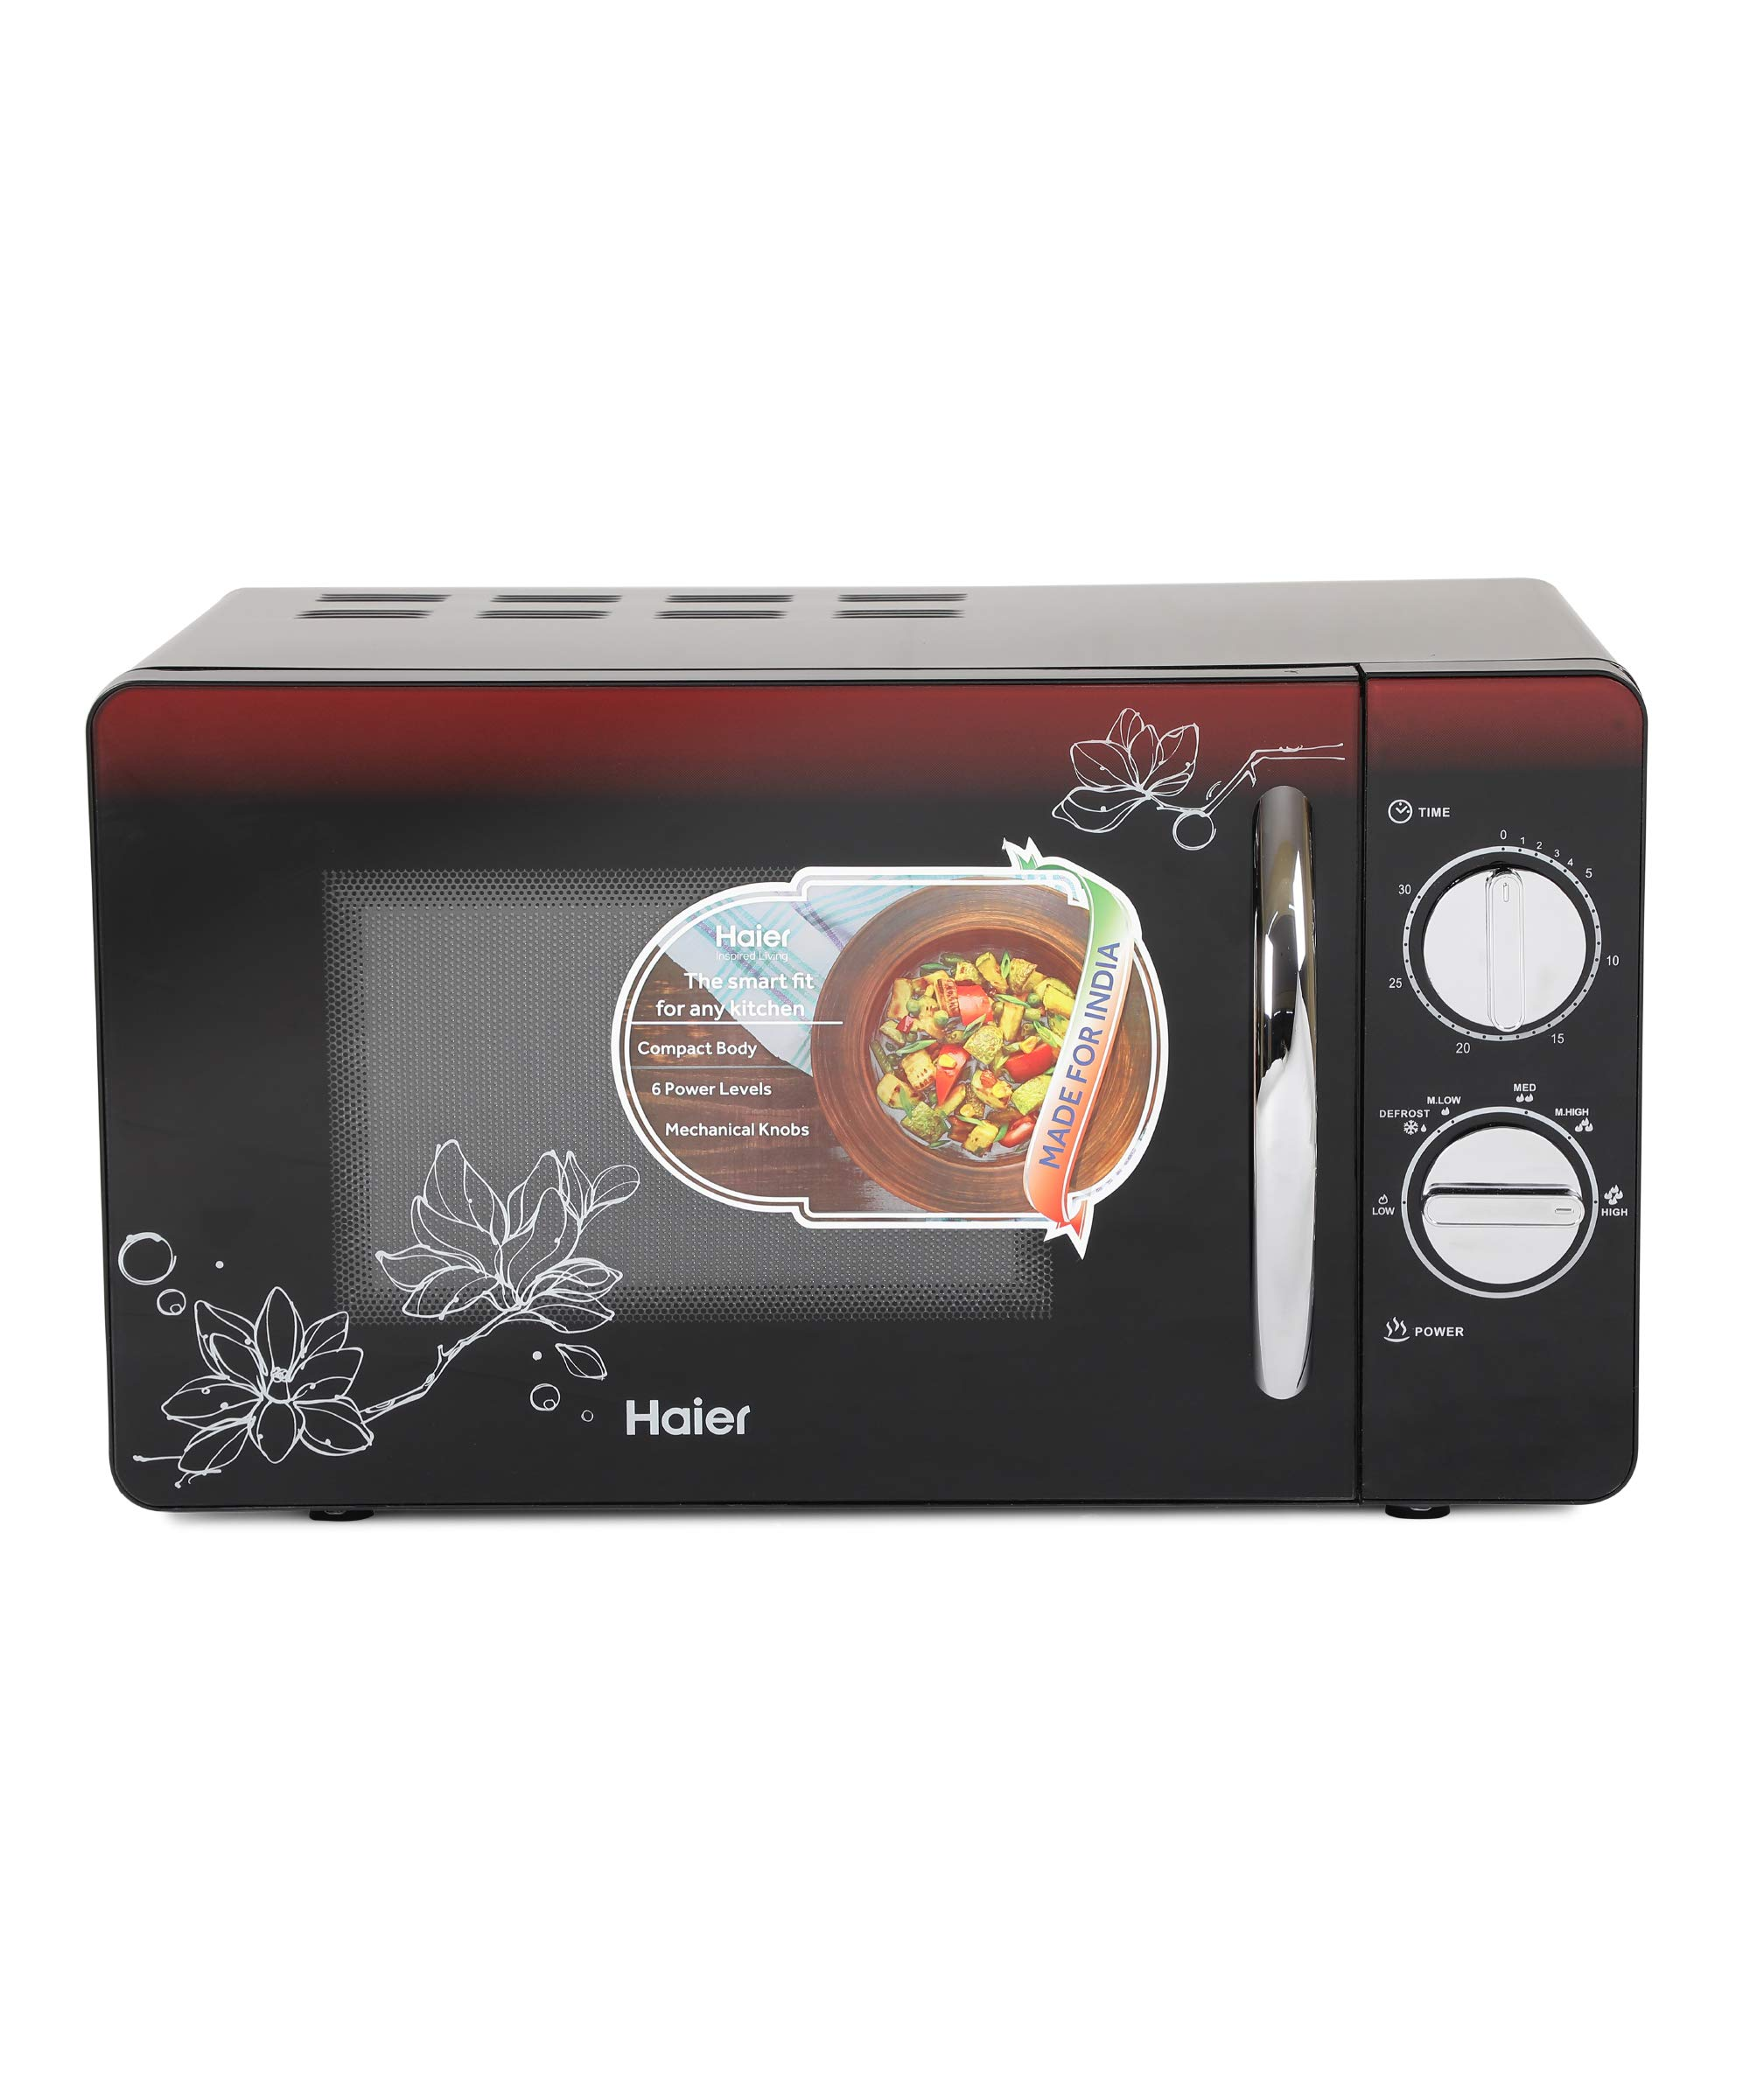 7. Haier 20 L Solo Microwave Oven